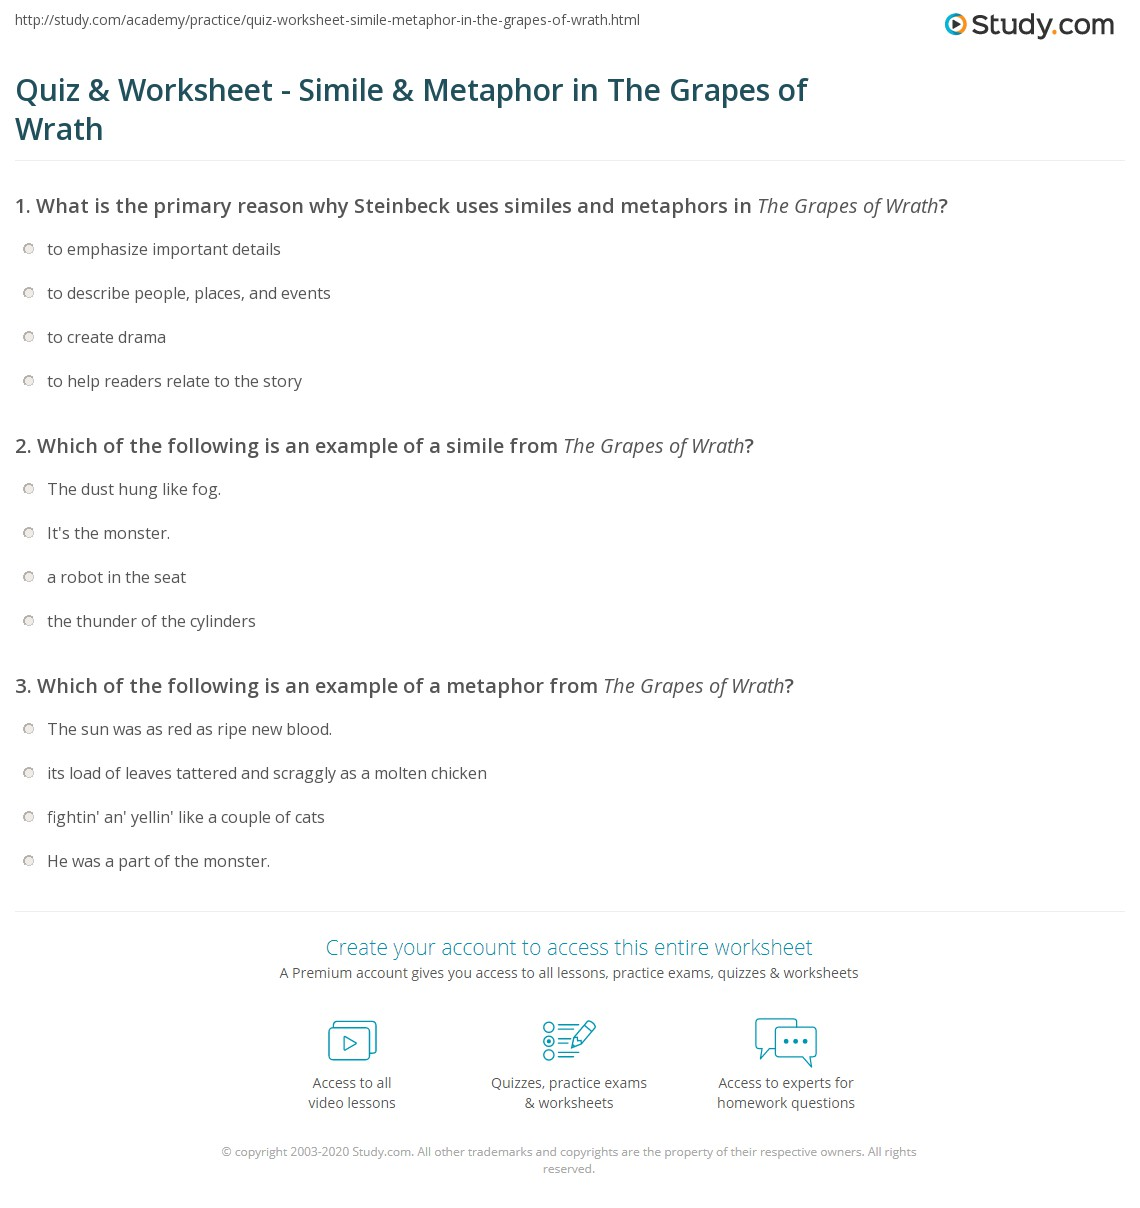 Example Metaphor Worksheet